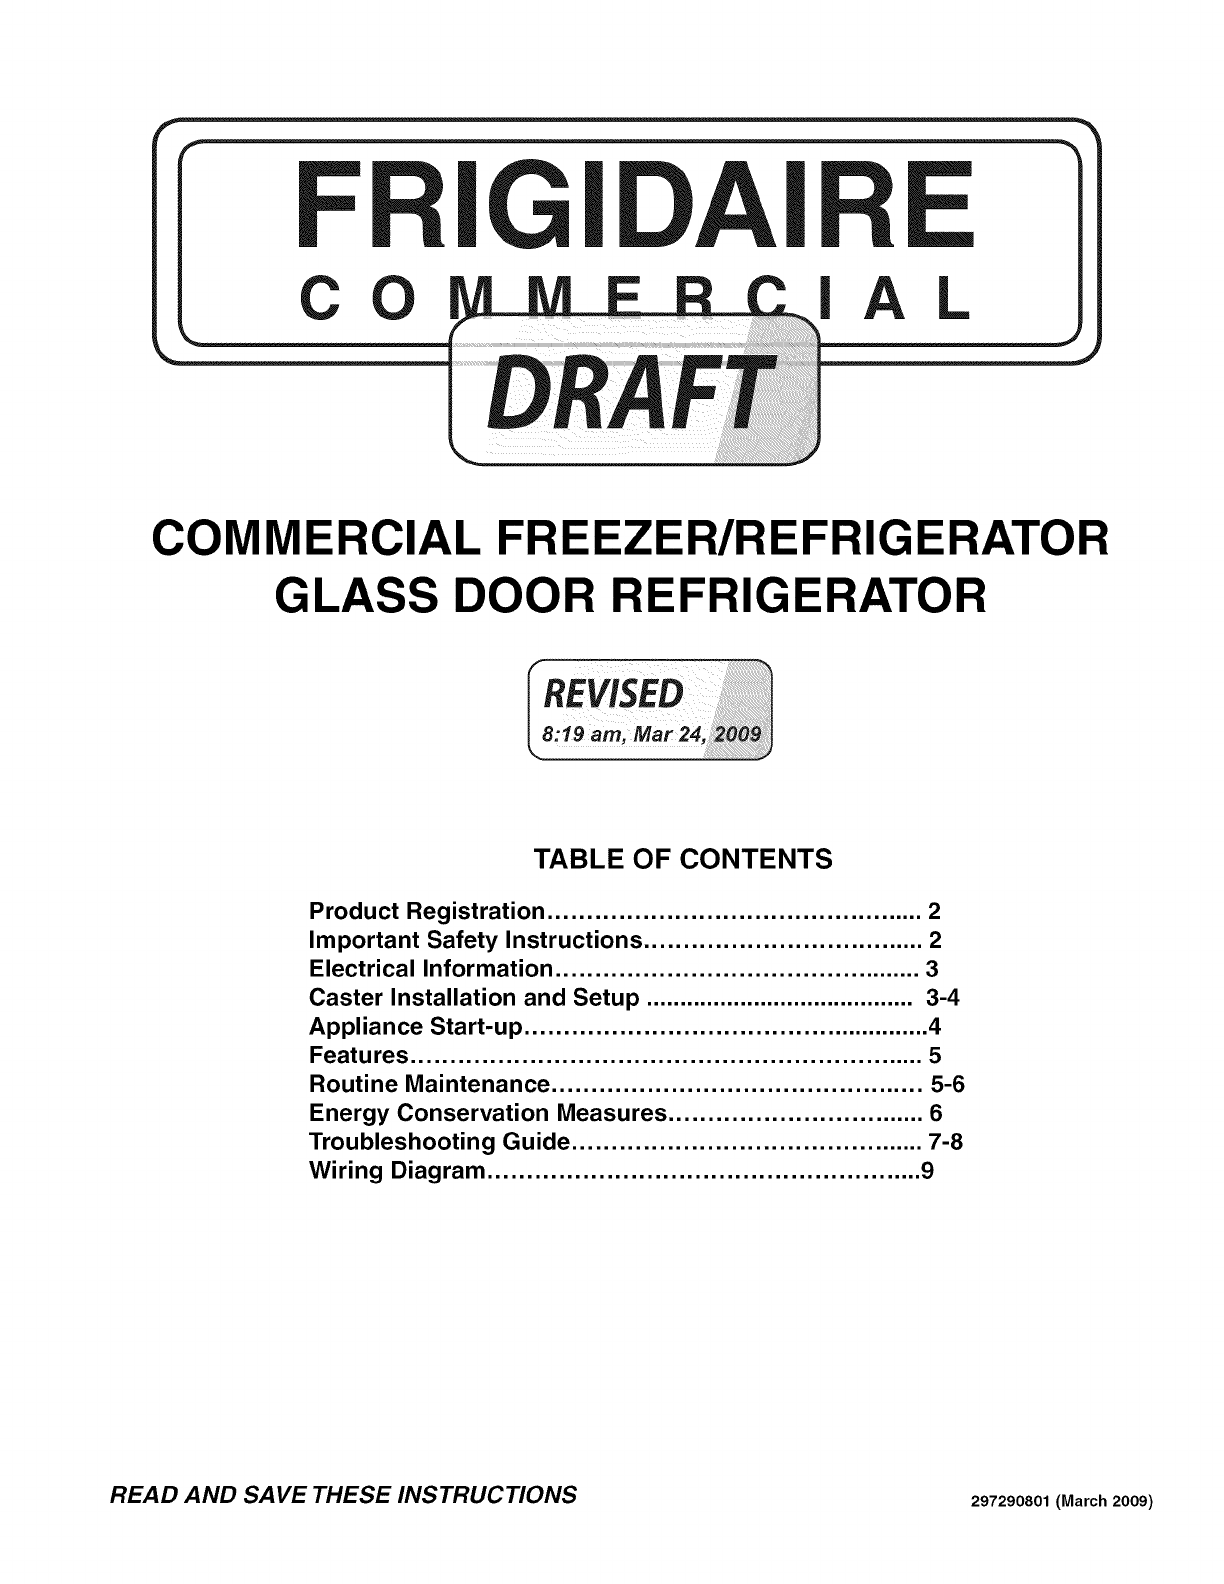 Frigidaire Commercial Refrigerator Wiring Diagram Schematic Diagrams Compressor Fcgm201rfb2 User Manual Freezer Manuals And Microwave